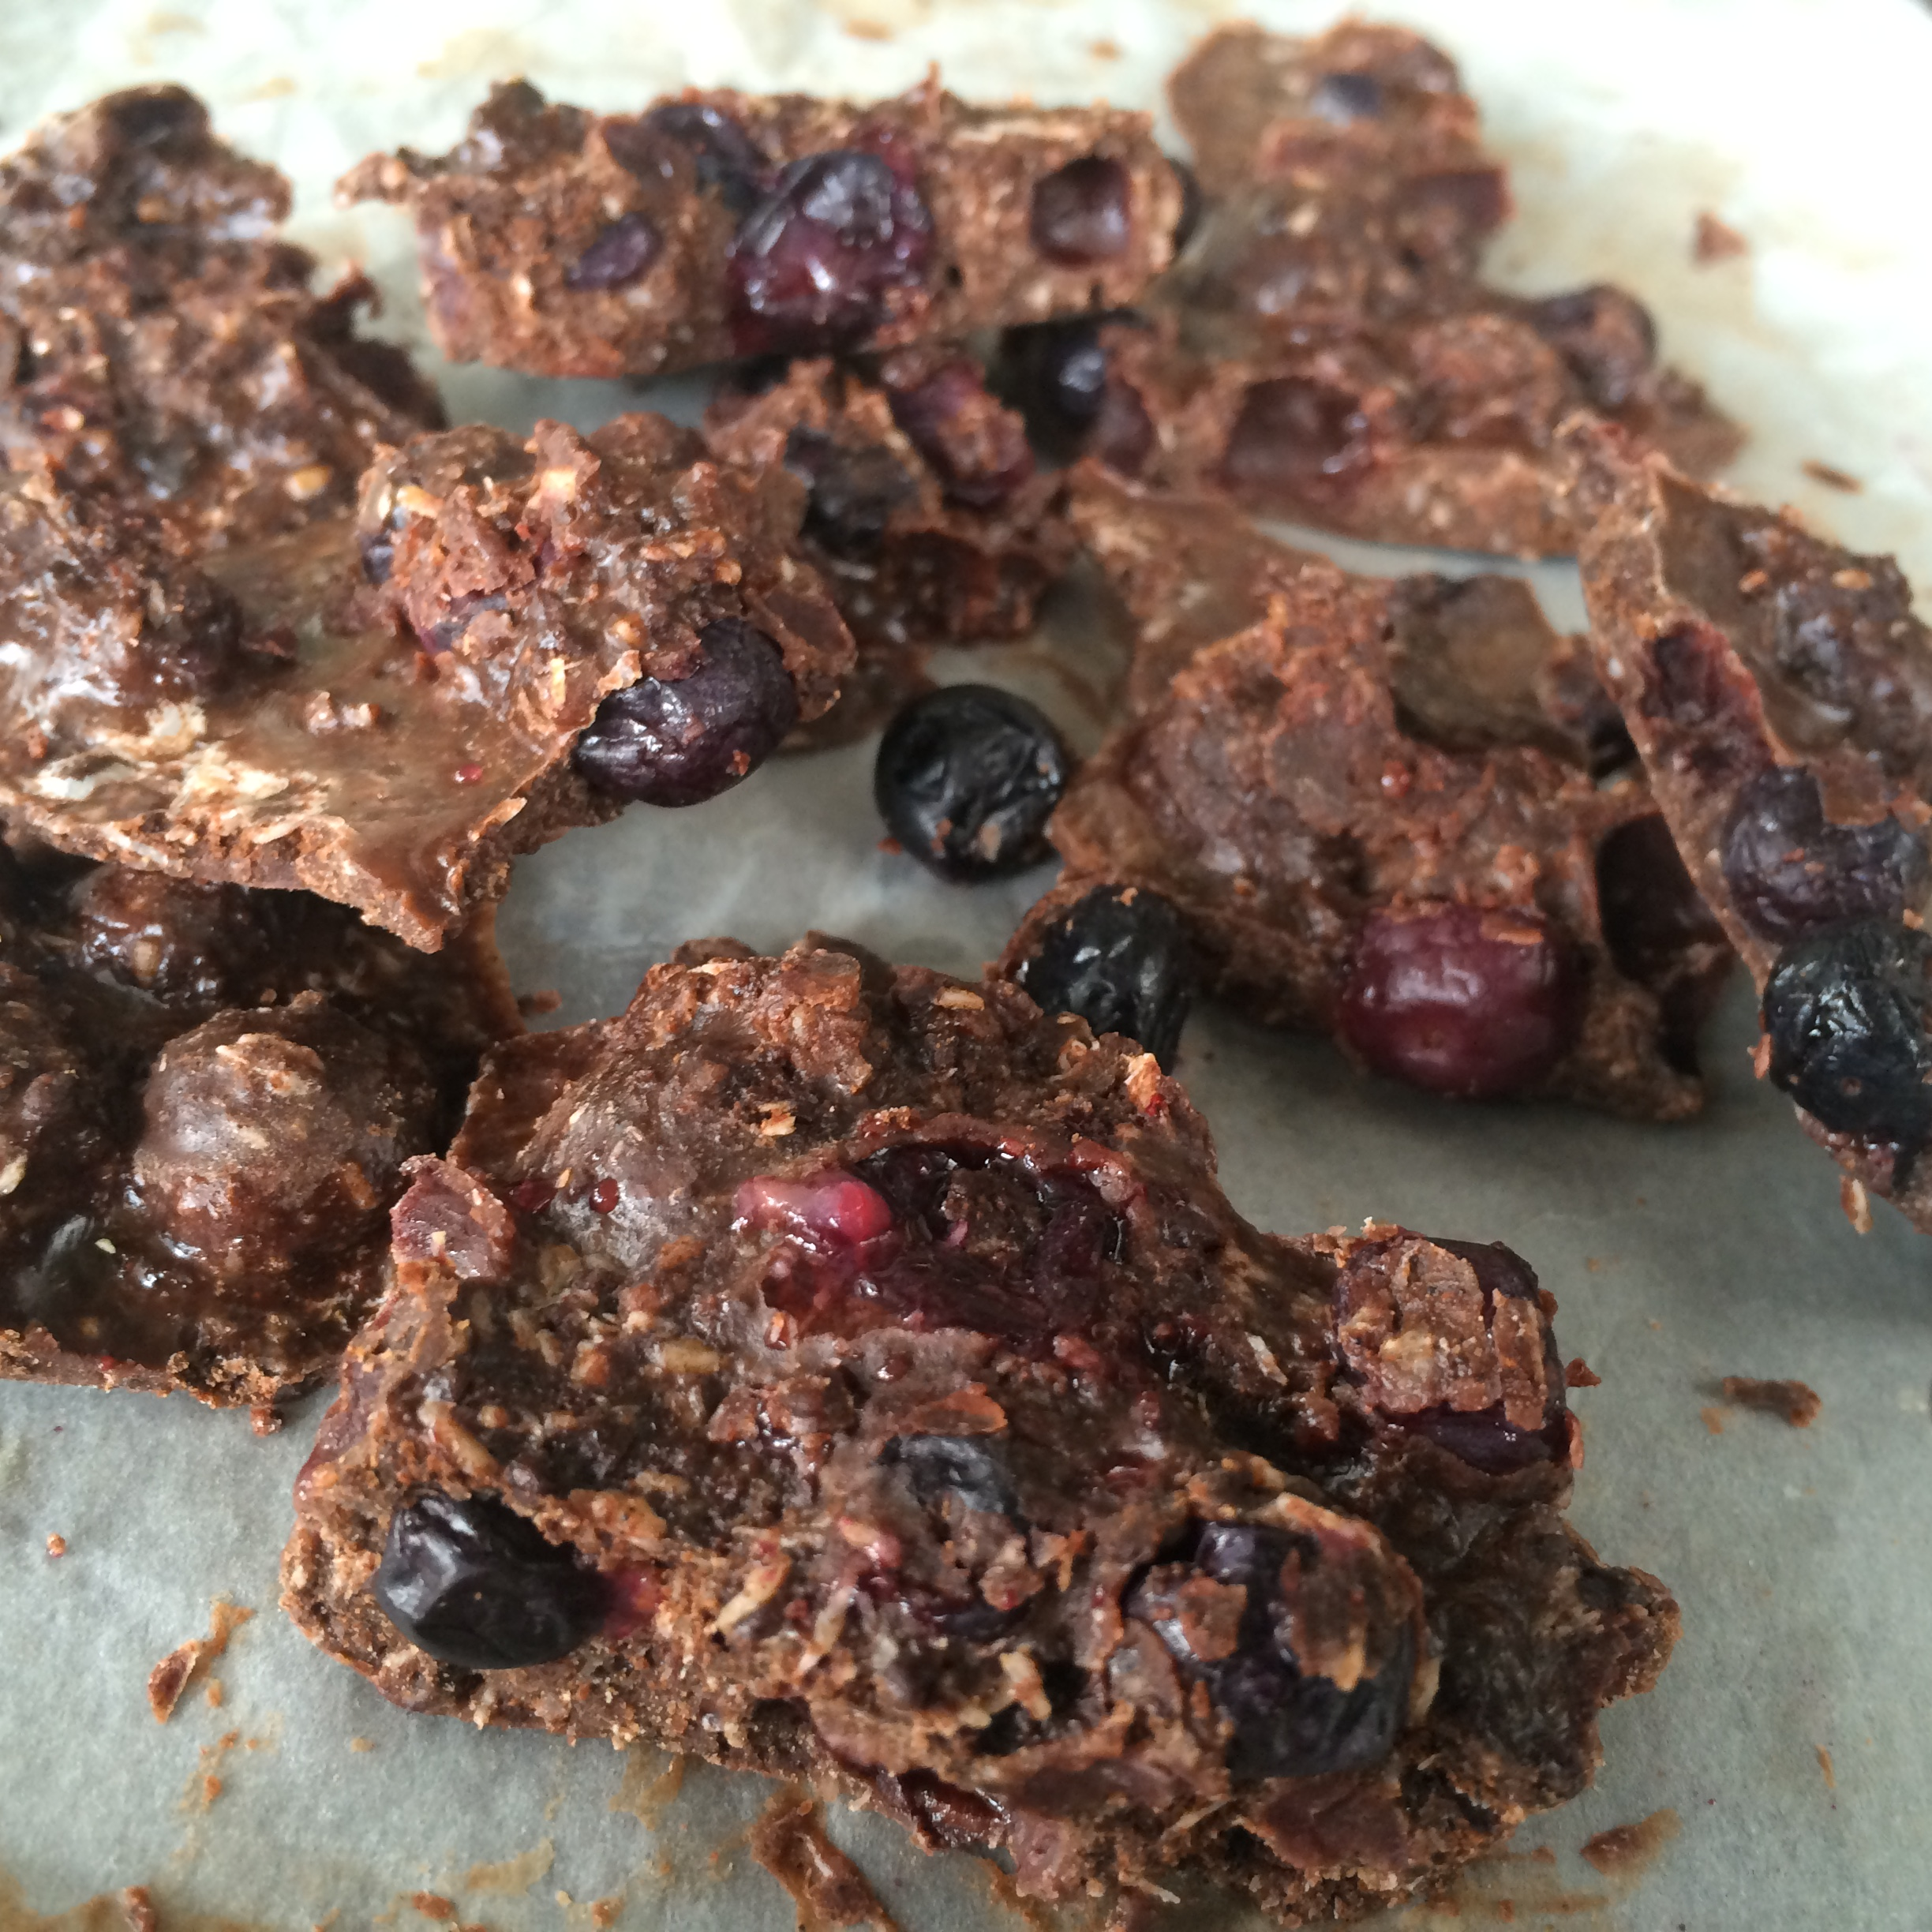 Carob Blueberry Bark